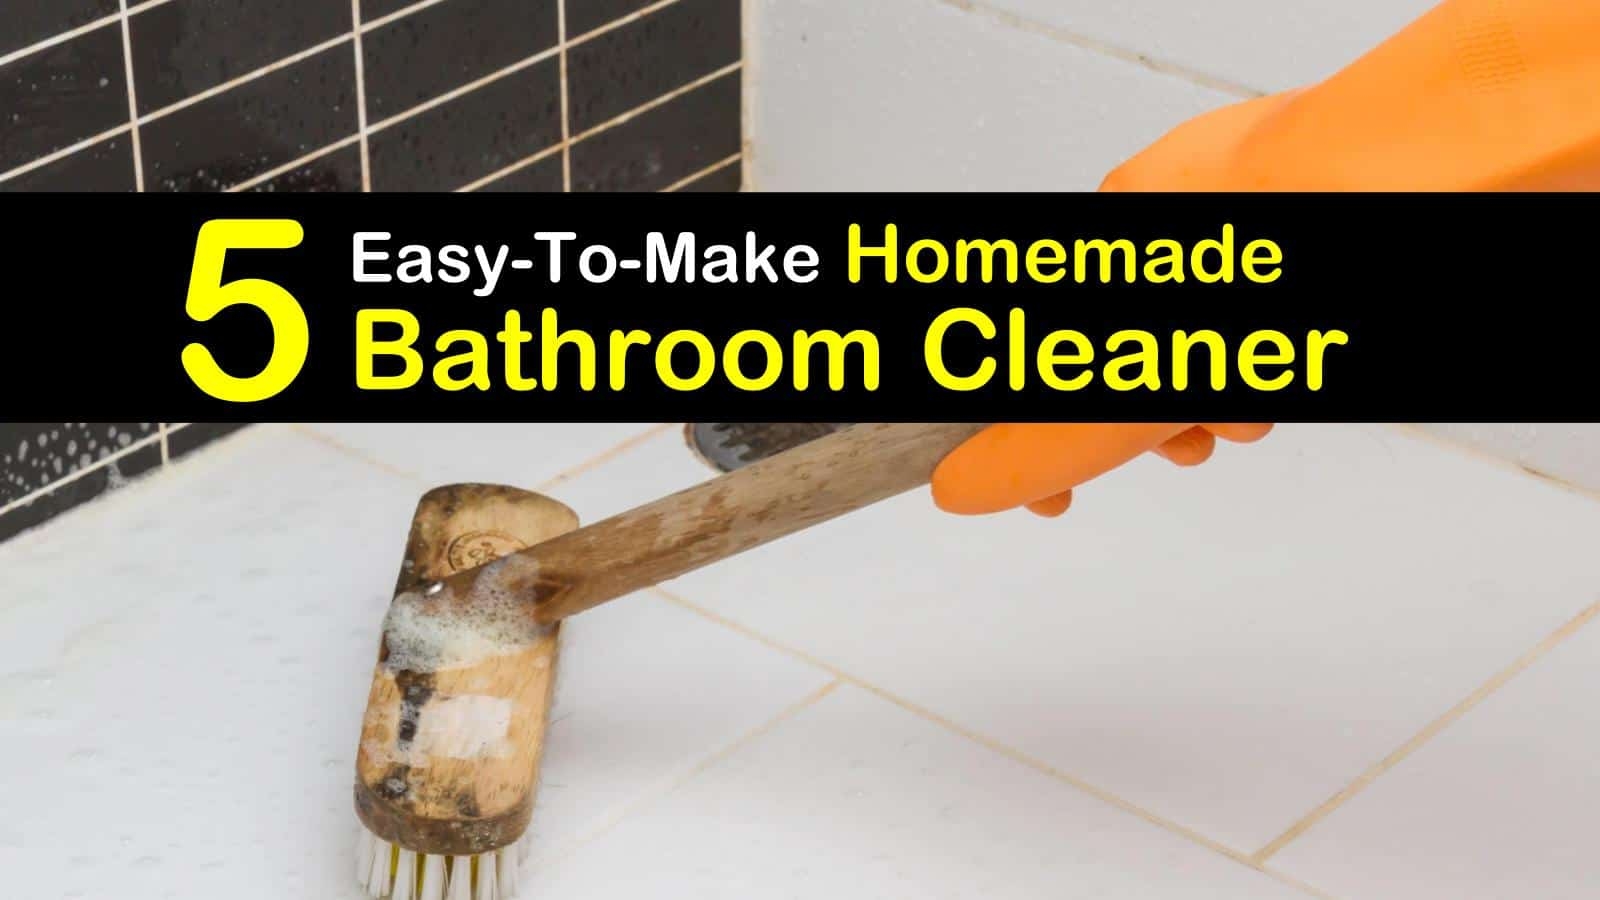 5 easy to make homemade bathroom cleaner - Homemade Bathroom Cleaner